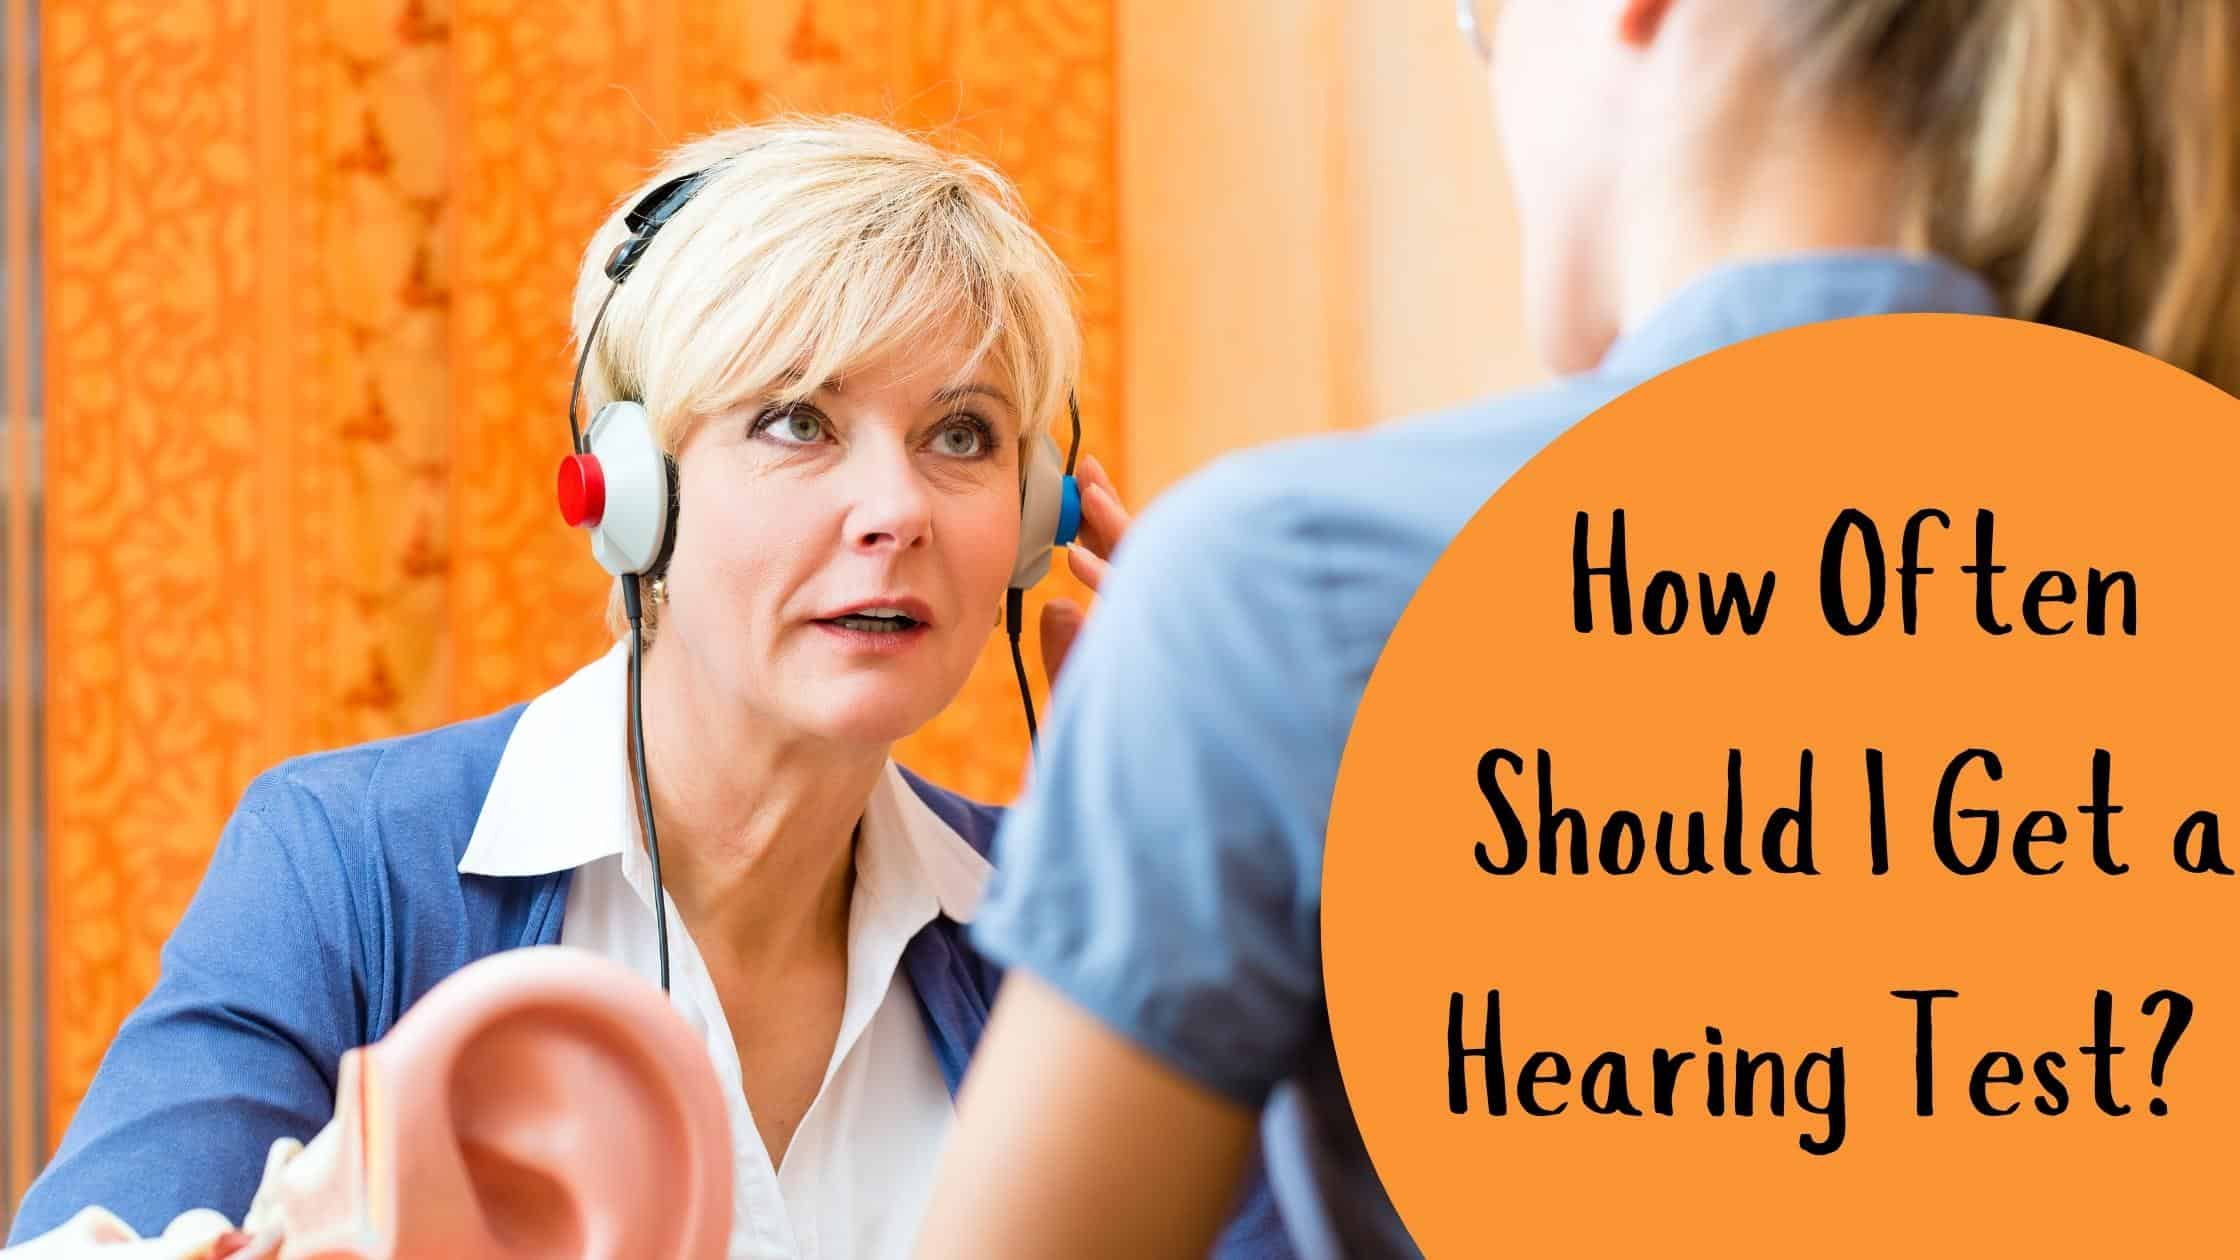 How Often Should I Get a Hearing Test?